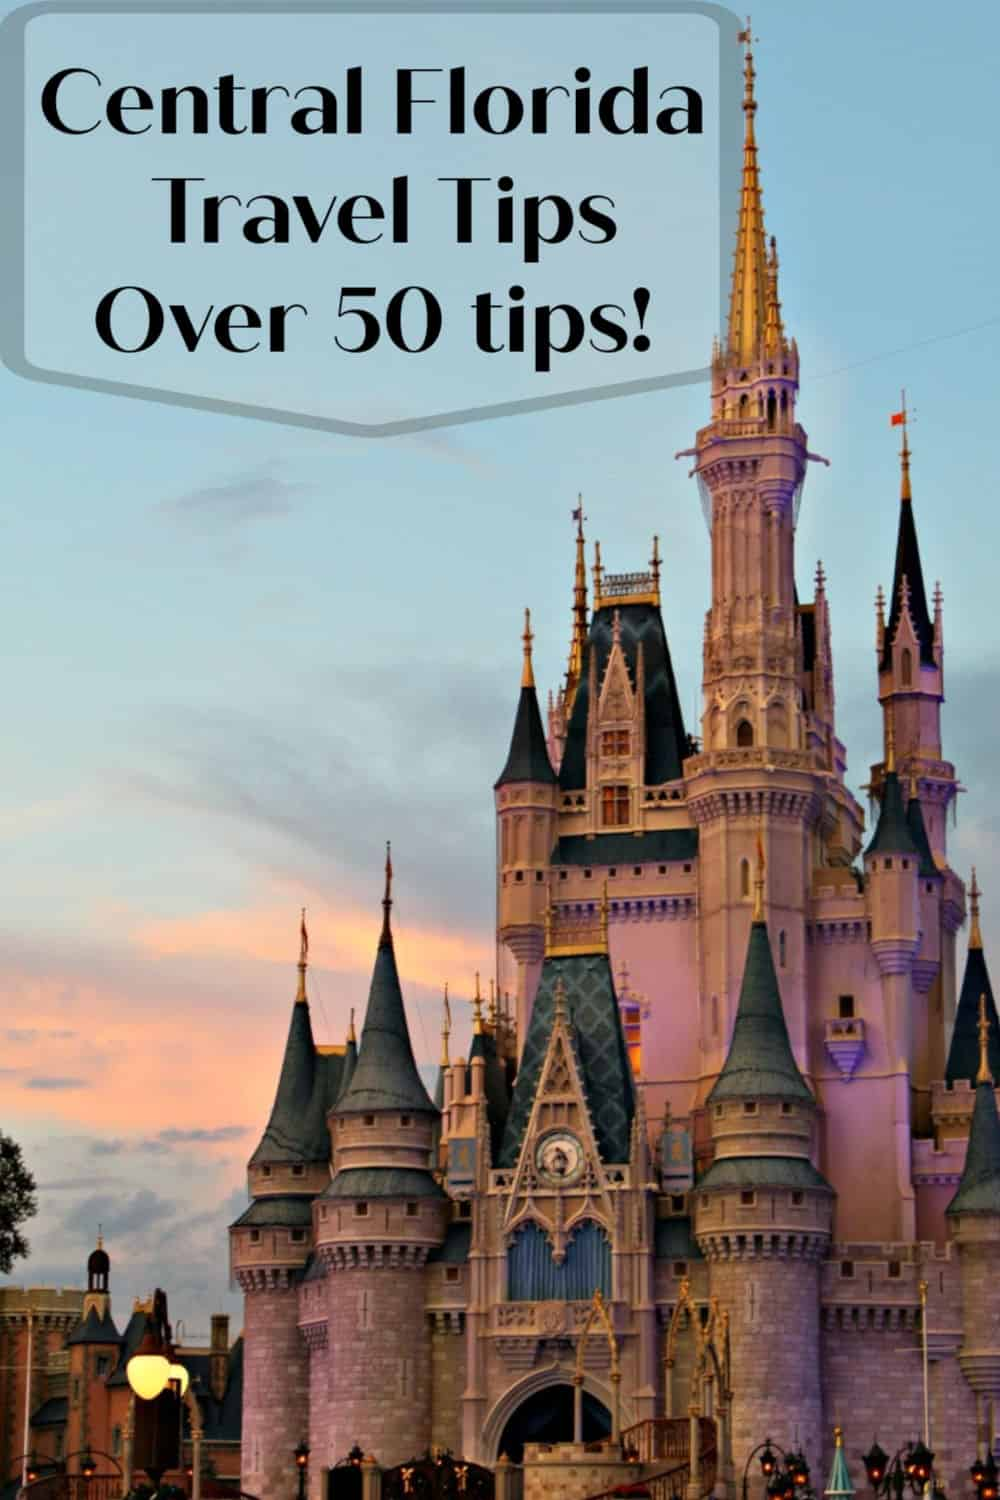 Central Florida Travel Tips - Don'[t miss these tips for traveling to Central Florida that include tips for packing, theme parks, the Florida heat and so much more! #Florida #travel